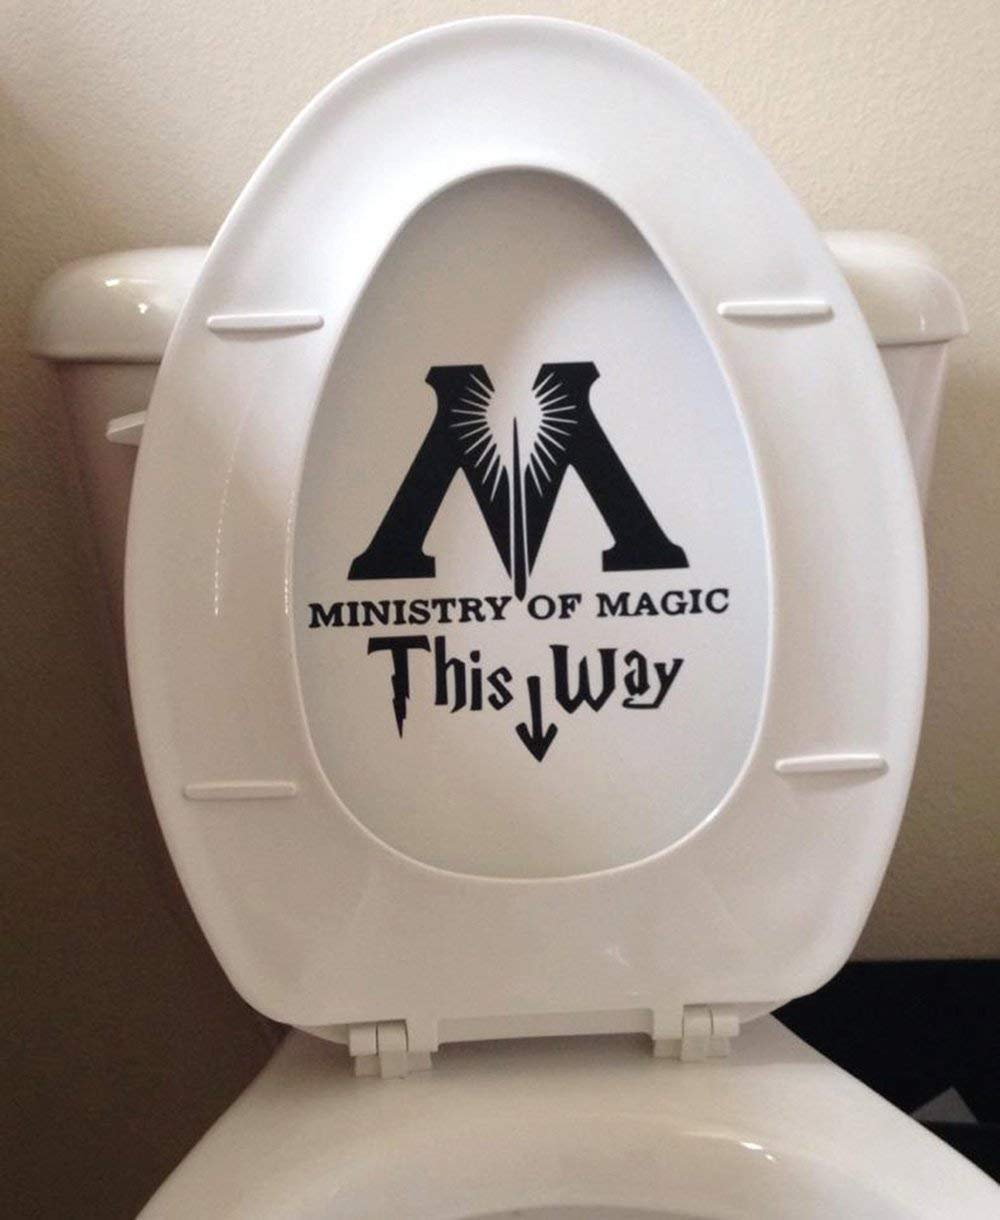 Ministry of Magic Toilet Harry Potter Decal Sticker Vinyl Die Cut Decal Sticker for Toilet Decoration